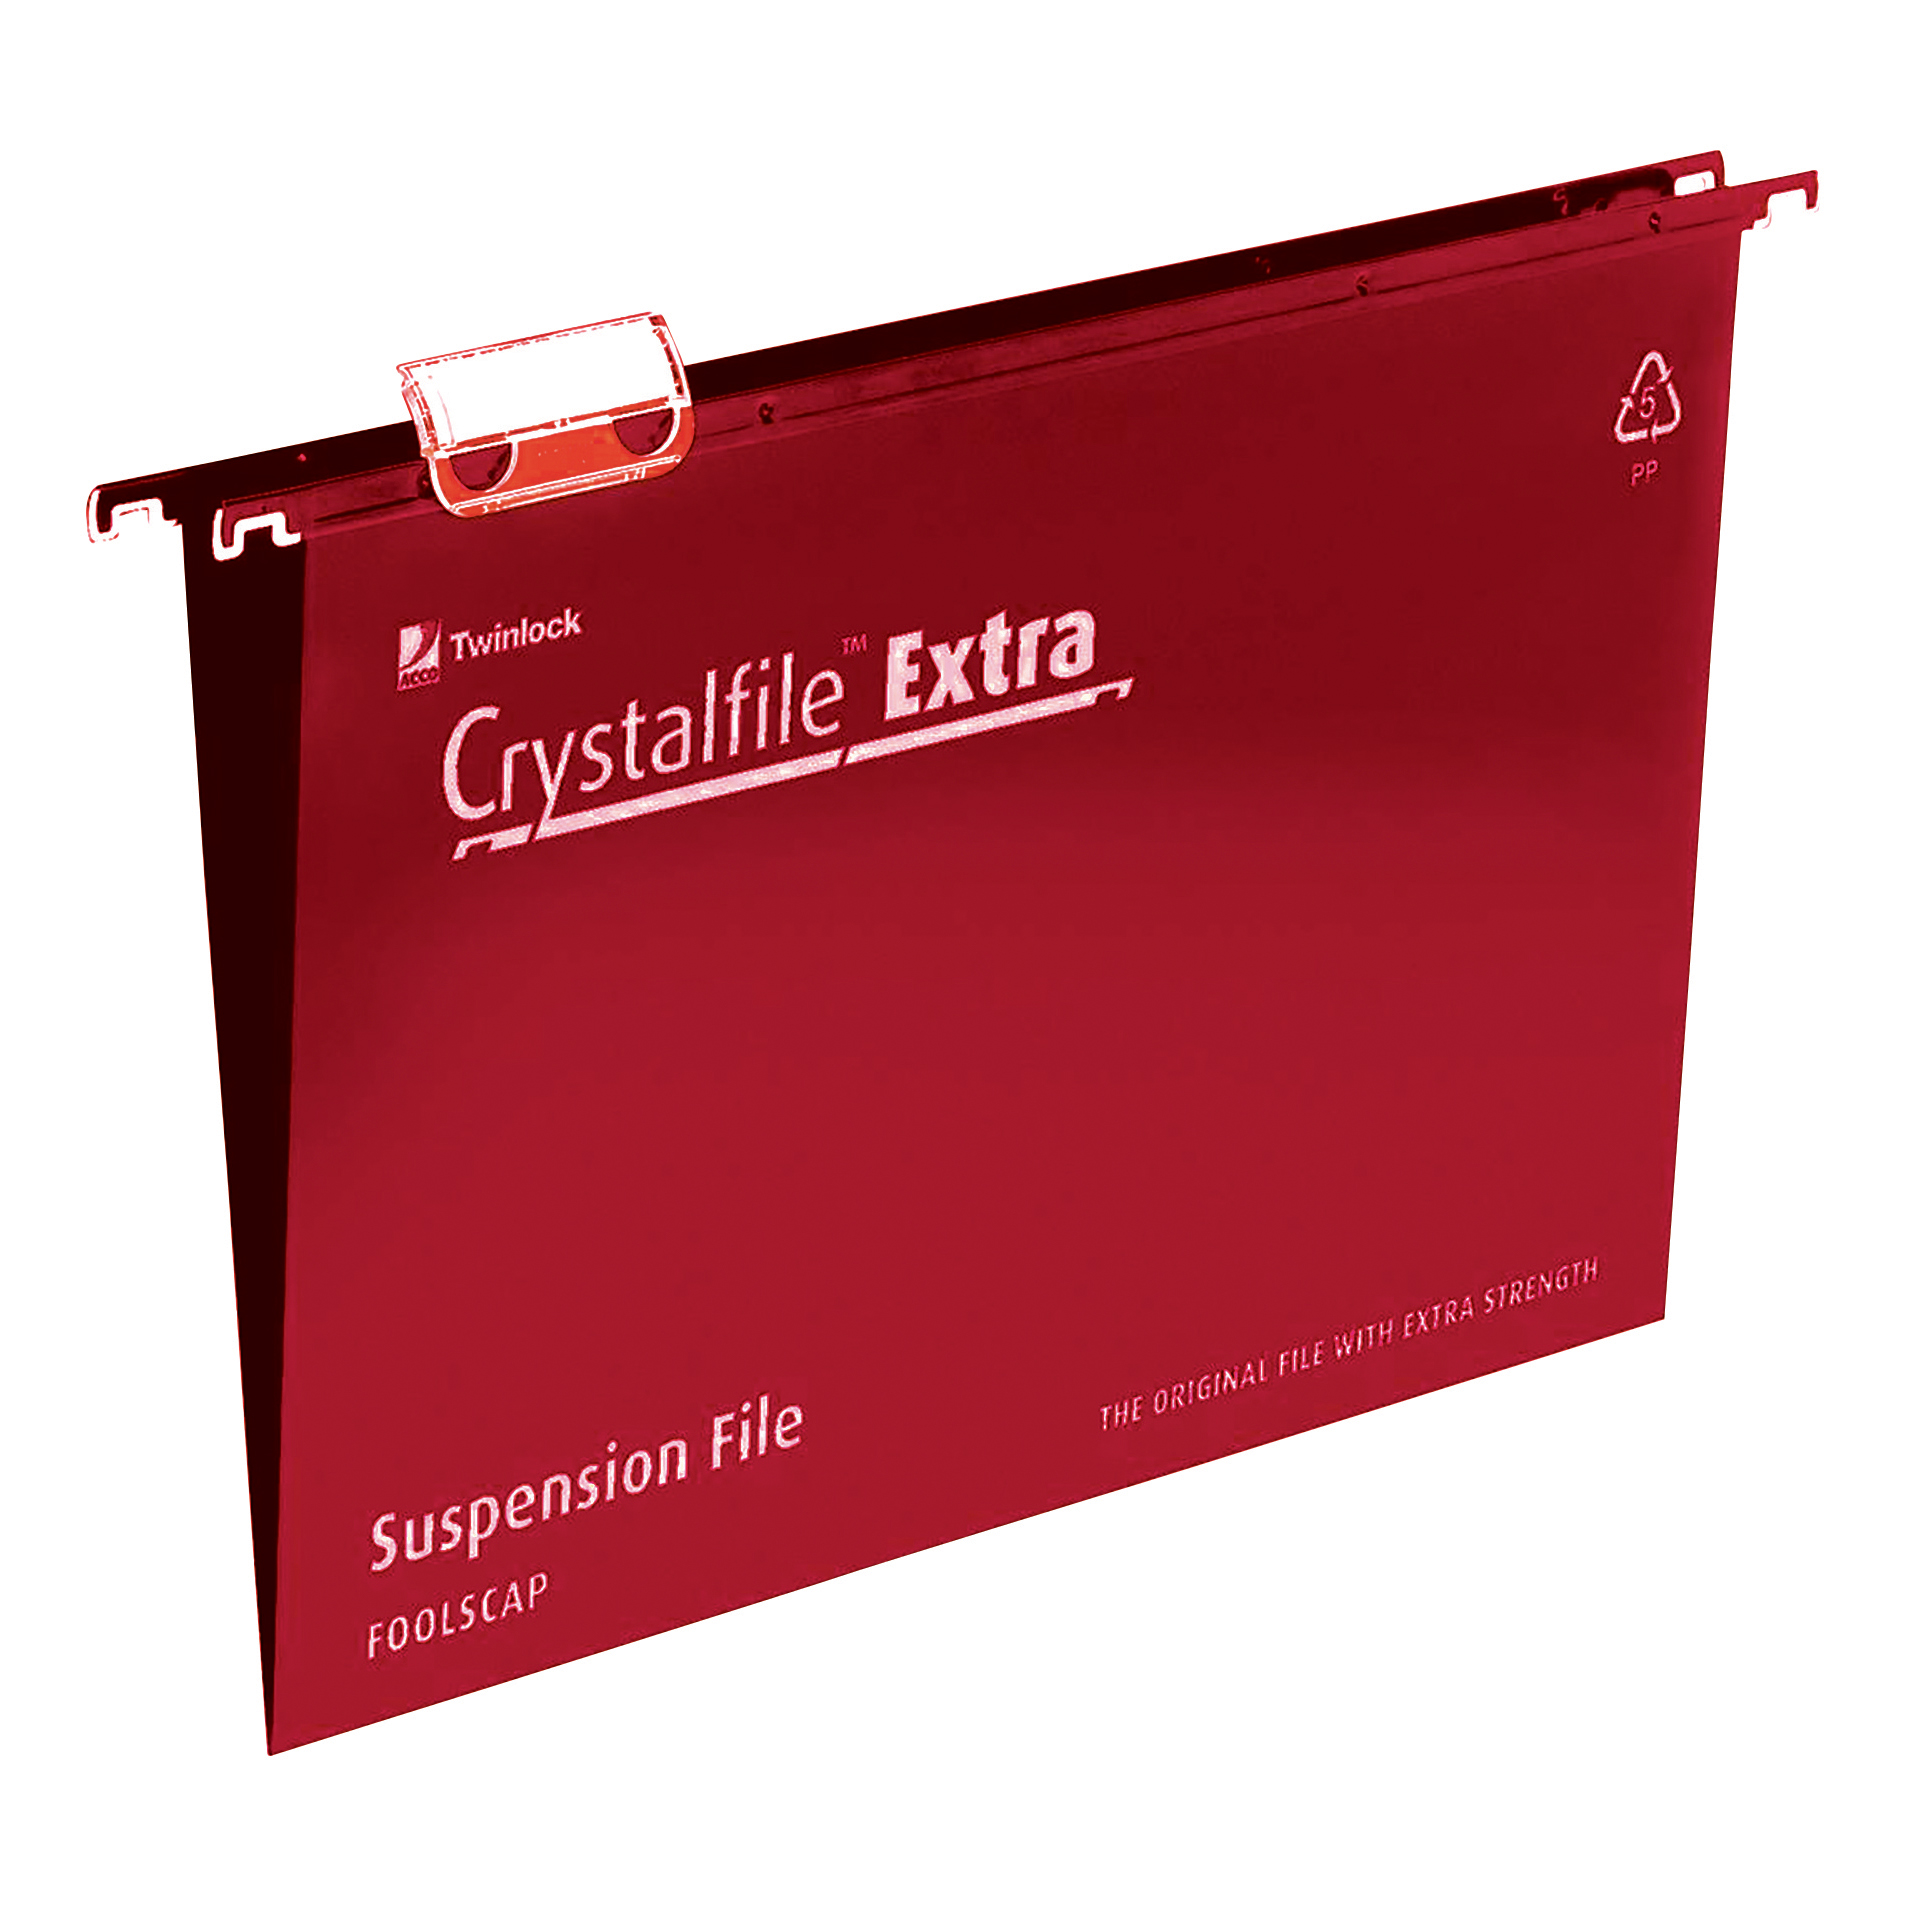 Rexel Crystalfile Extra Suspension File Polypropylene 15mm Foolscap Red Ref 70629 [Pack 25]